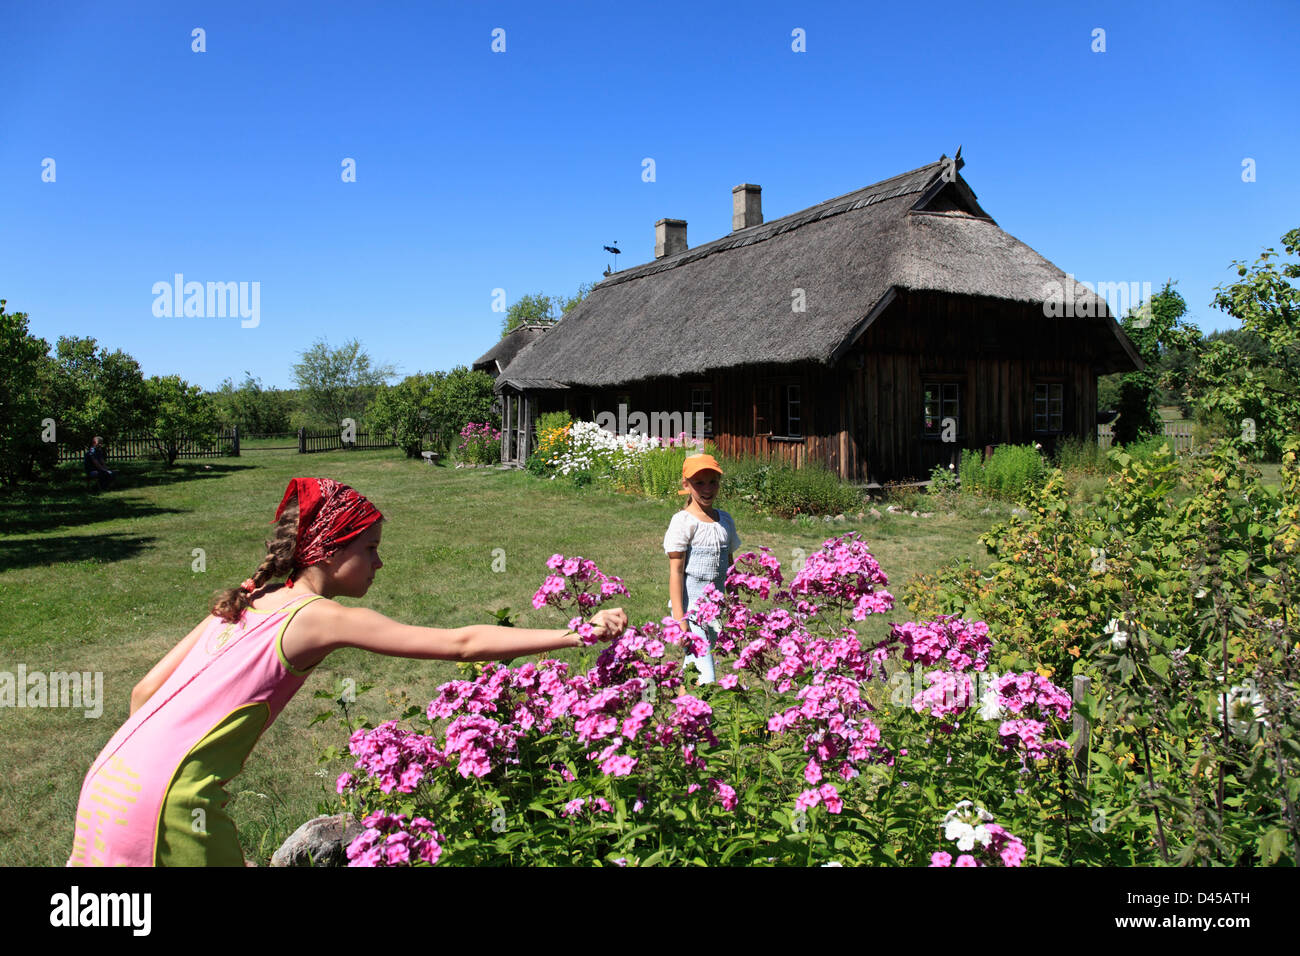 Two girls at Latvian Ethnographic Open-air Museum, near Riga, Latvia - Stock Image